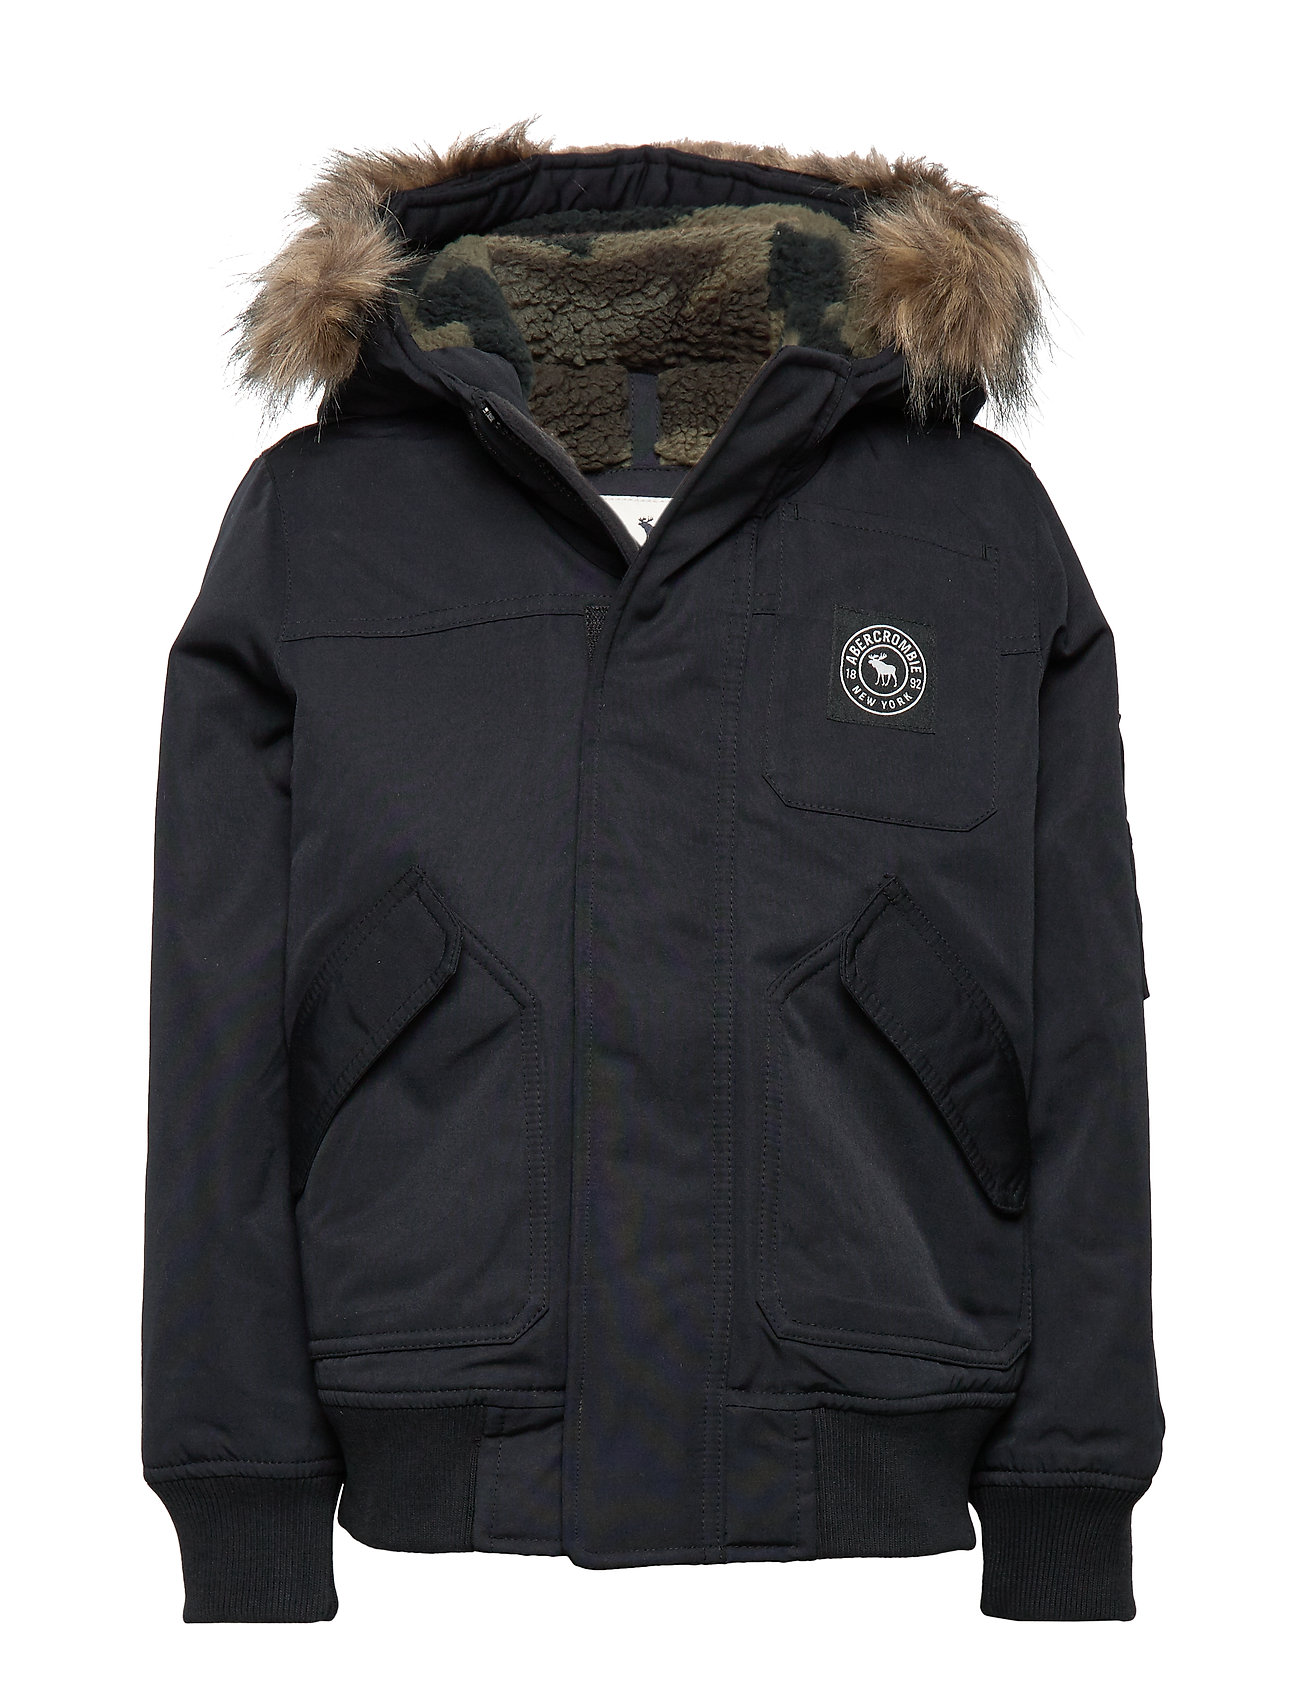 Abercrombie & Fitch Bomber - OPEN BLACK 90